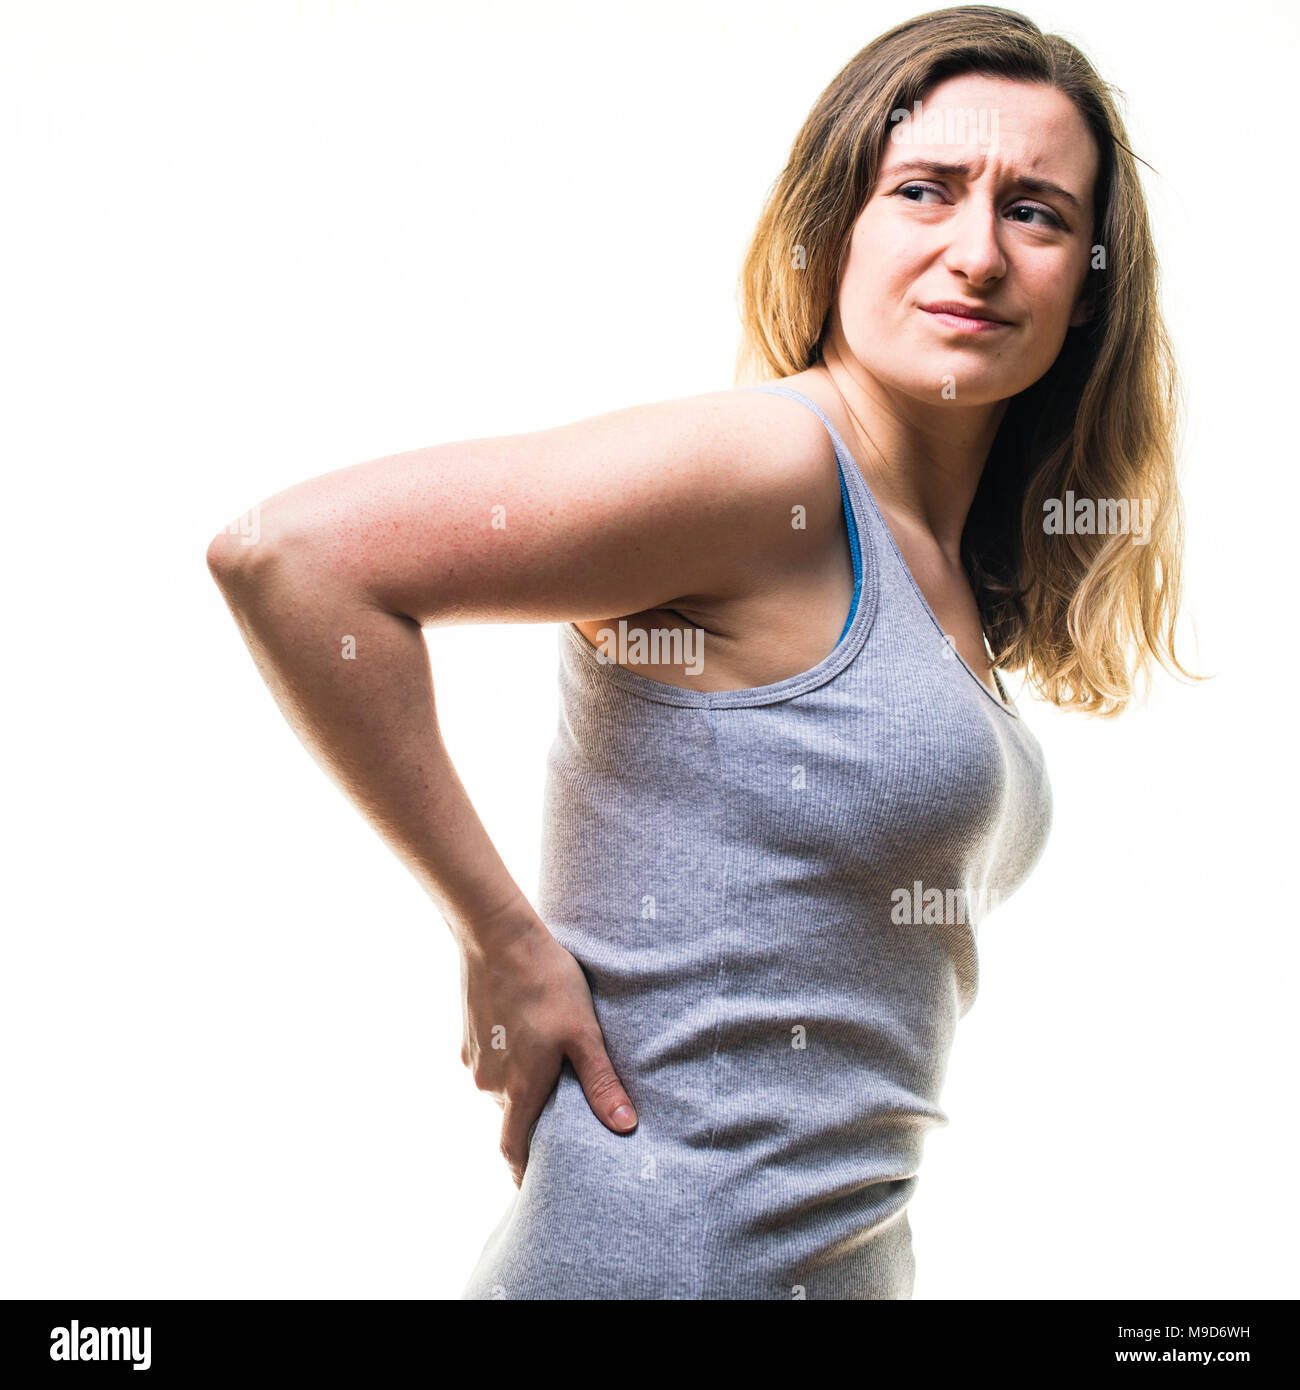 A young Caucasian woman girl wearing a grey vest, suffering from lower back pain, rubbing her back, standing against a white background, UK - Stock Image